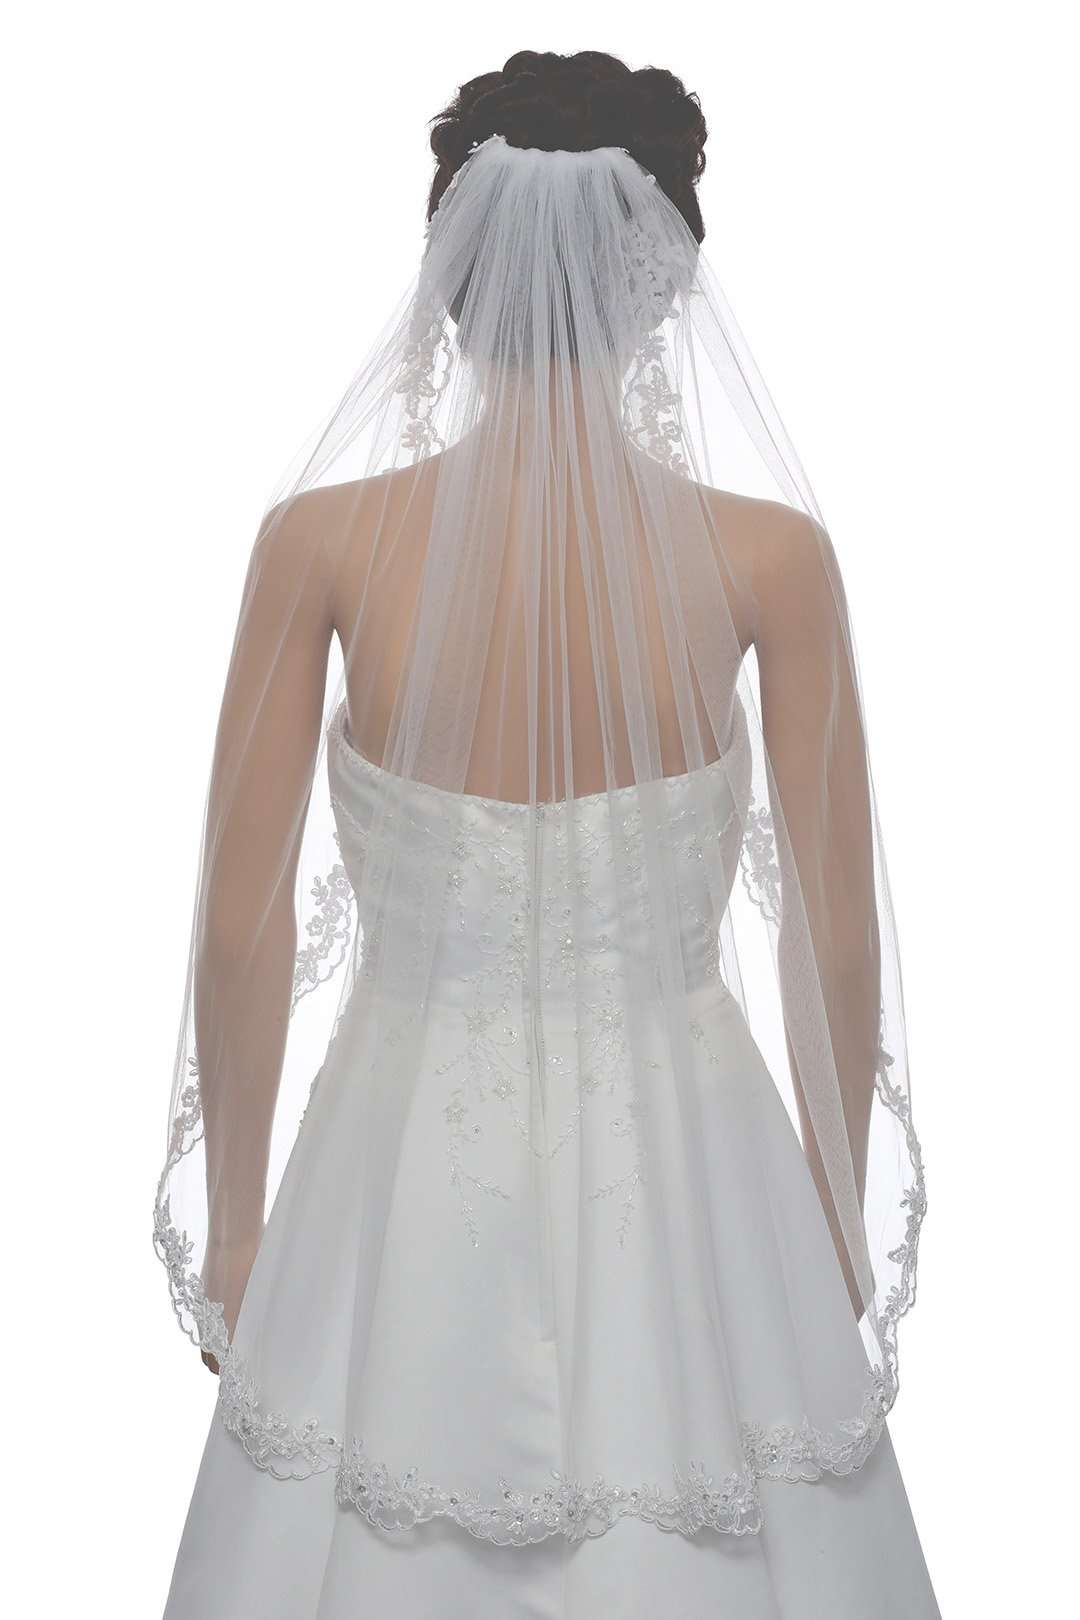 1T 1 Tier Flower Scallop Embroided Lace Pearl Veil - Ivory Fingertip Length 36'' V467